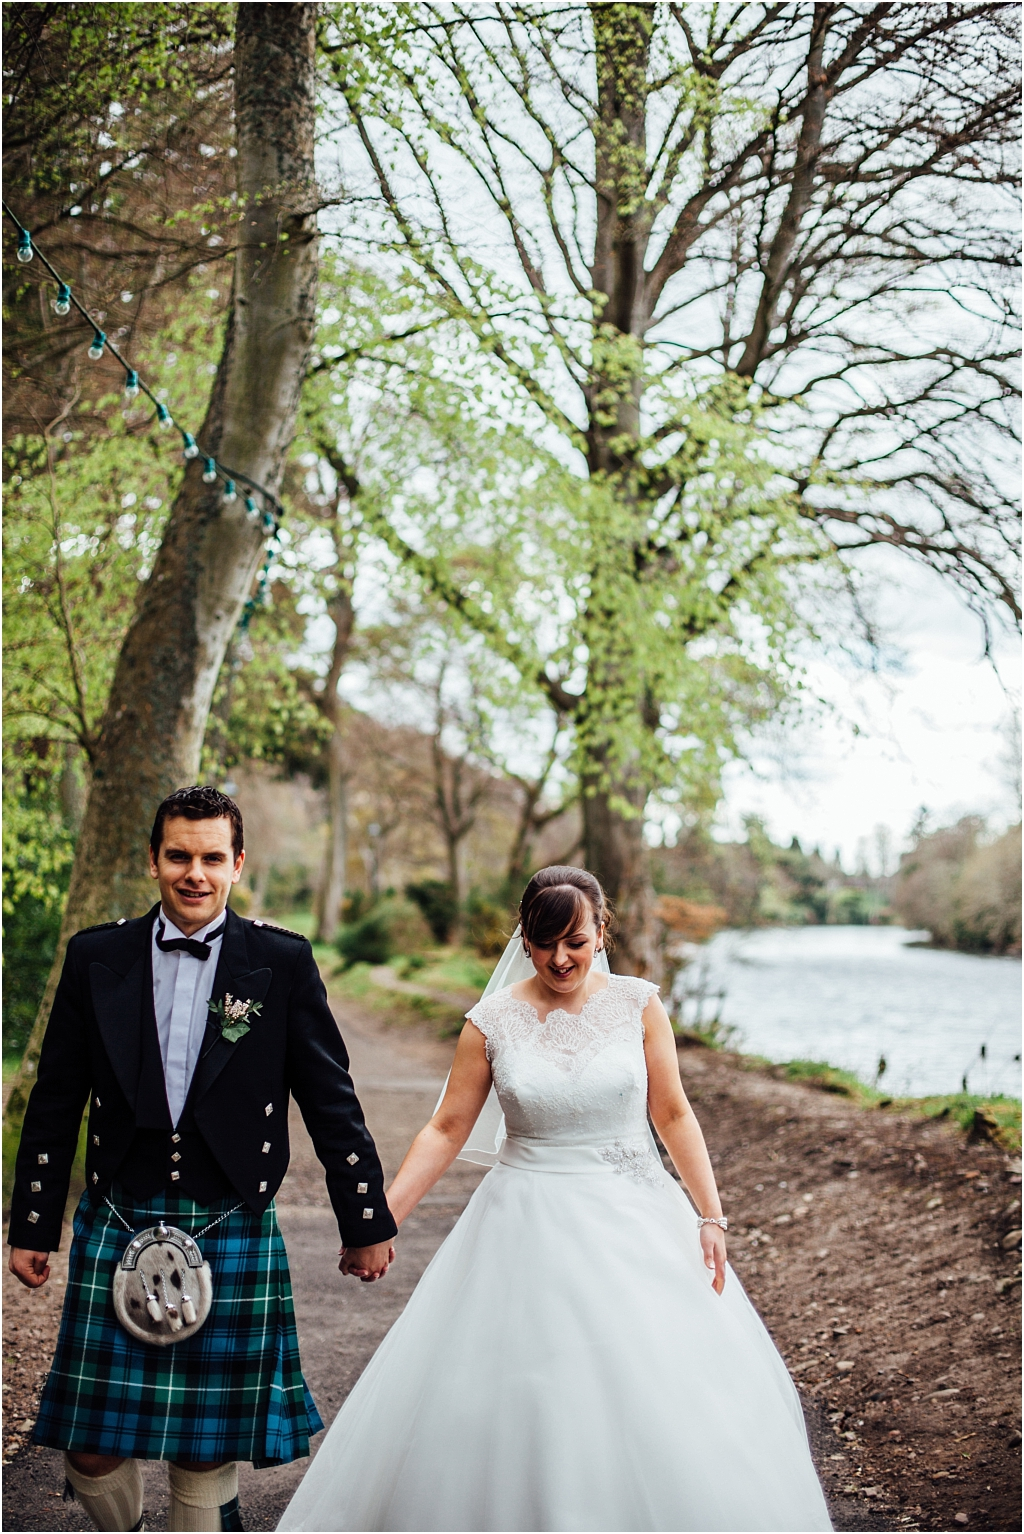 Island Wedding in Inverness at The Kingsmill Hotel \\ Emma & Donald